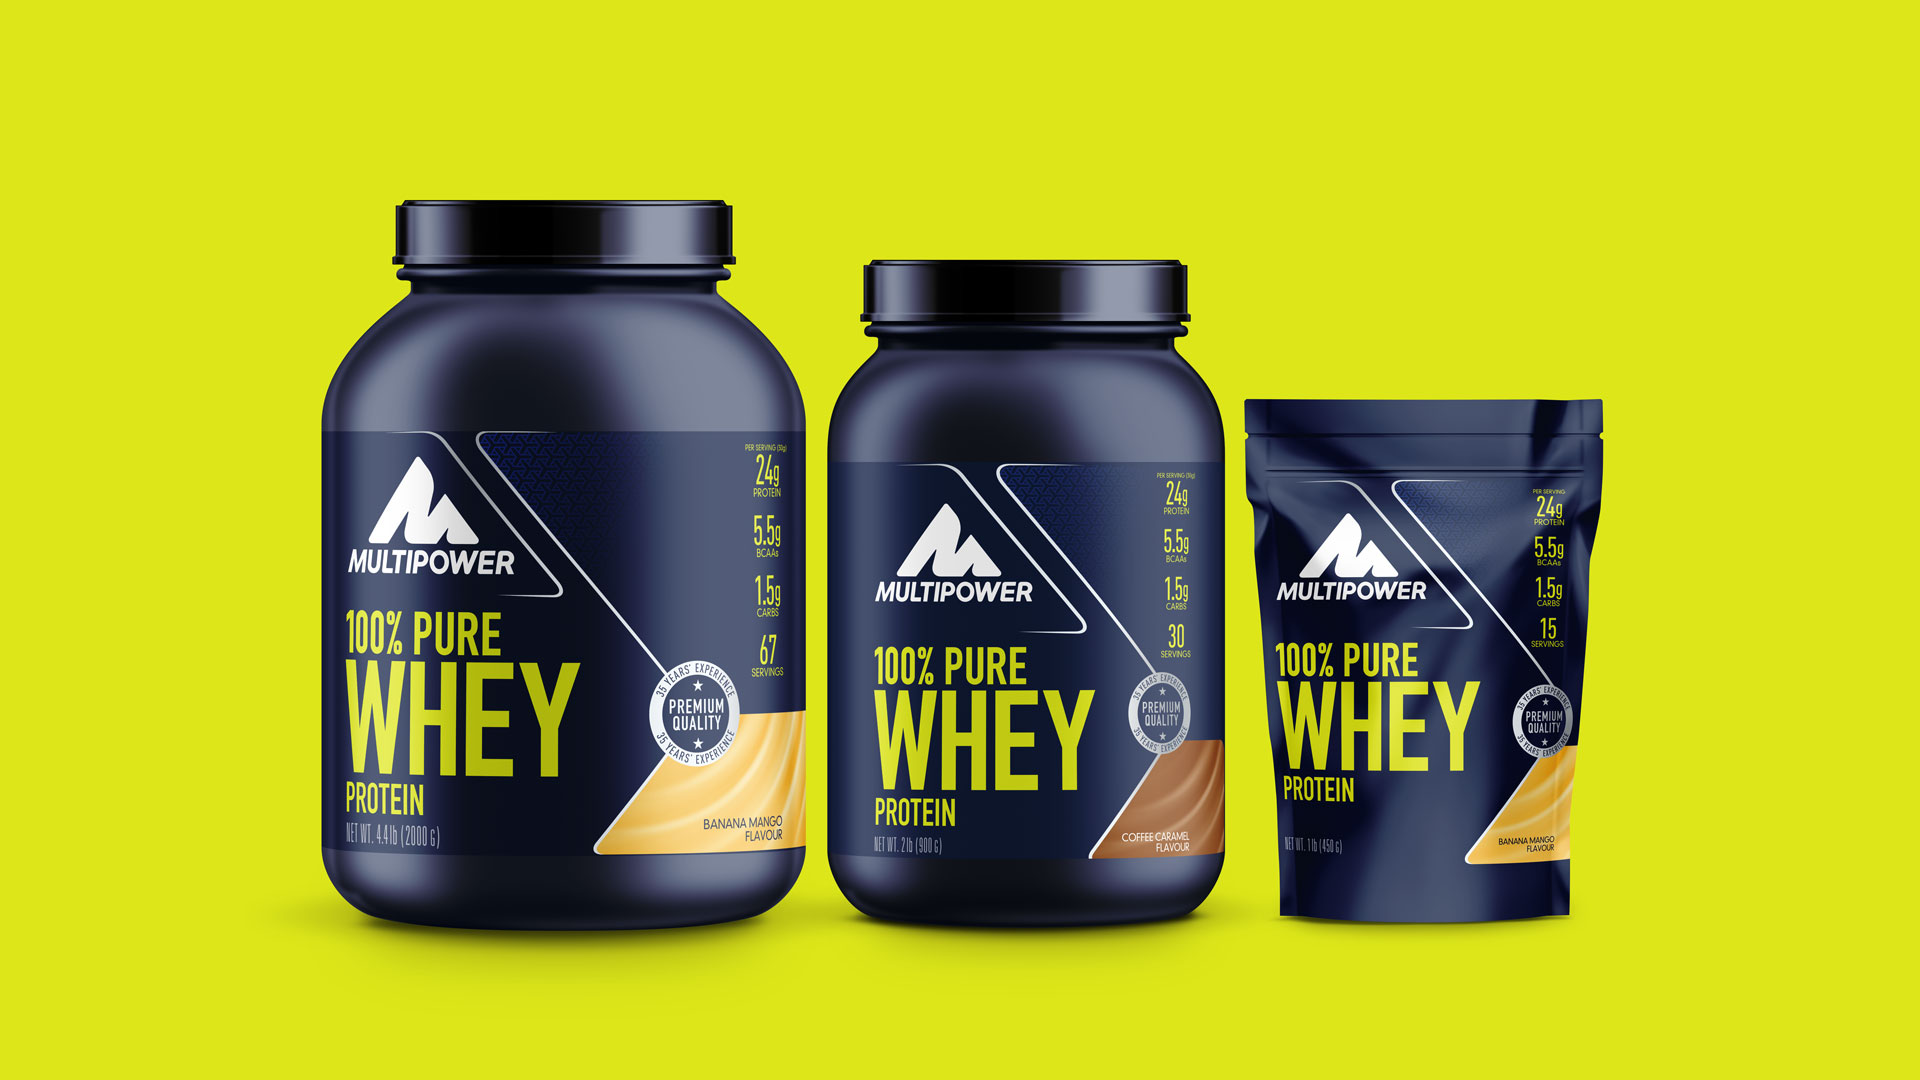 Multipower Pure Whey Protein Packaging Design